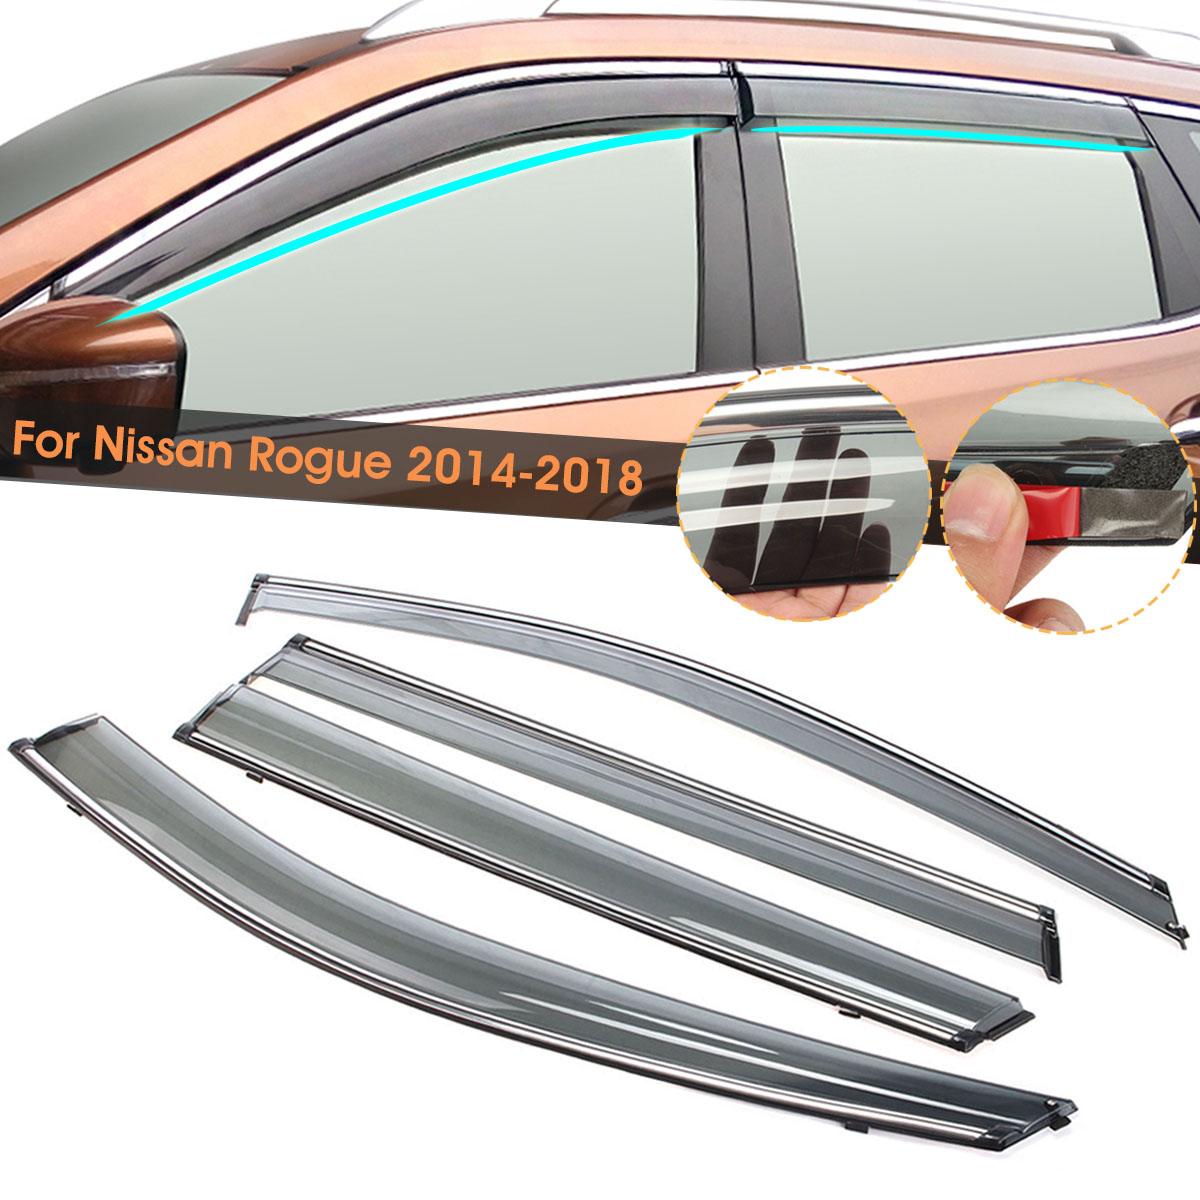 Fit For Nissan Rogue 2014 2015 2016 2017 2018 Car Vent Window Visor Shade Shades Visors Rain GuardsFit For Nissan Rogue 2014 2015 2016 2017 2018 Car Vent Window Visor Shade Shades Visors Rain Guards